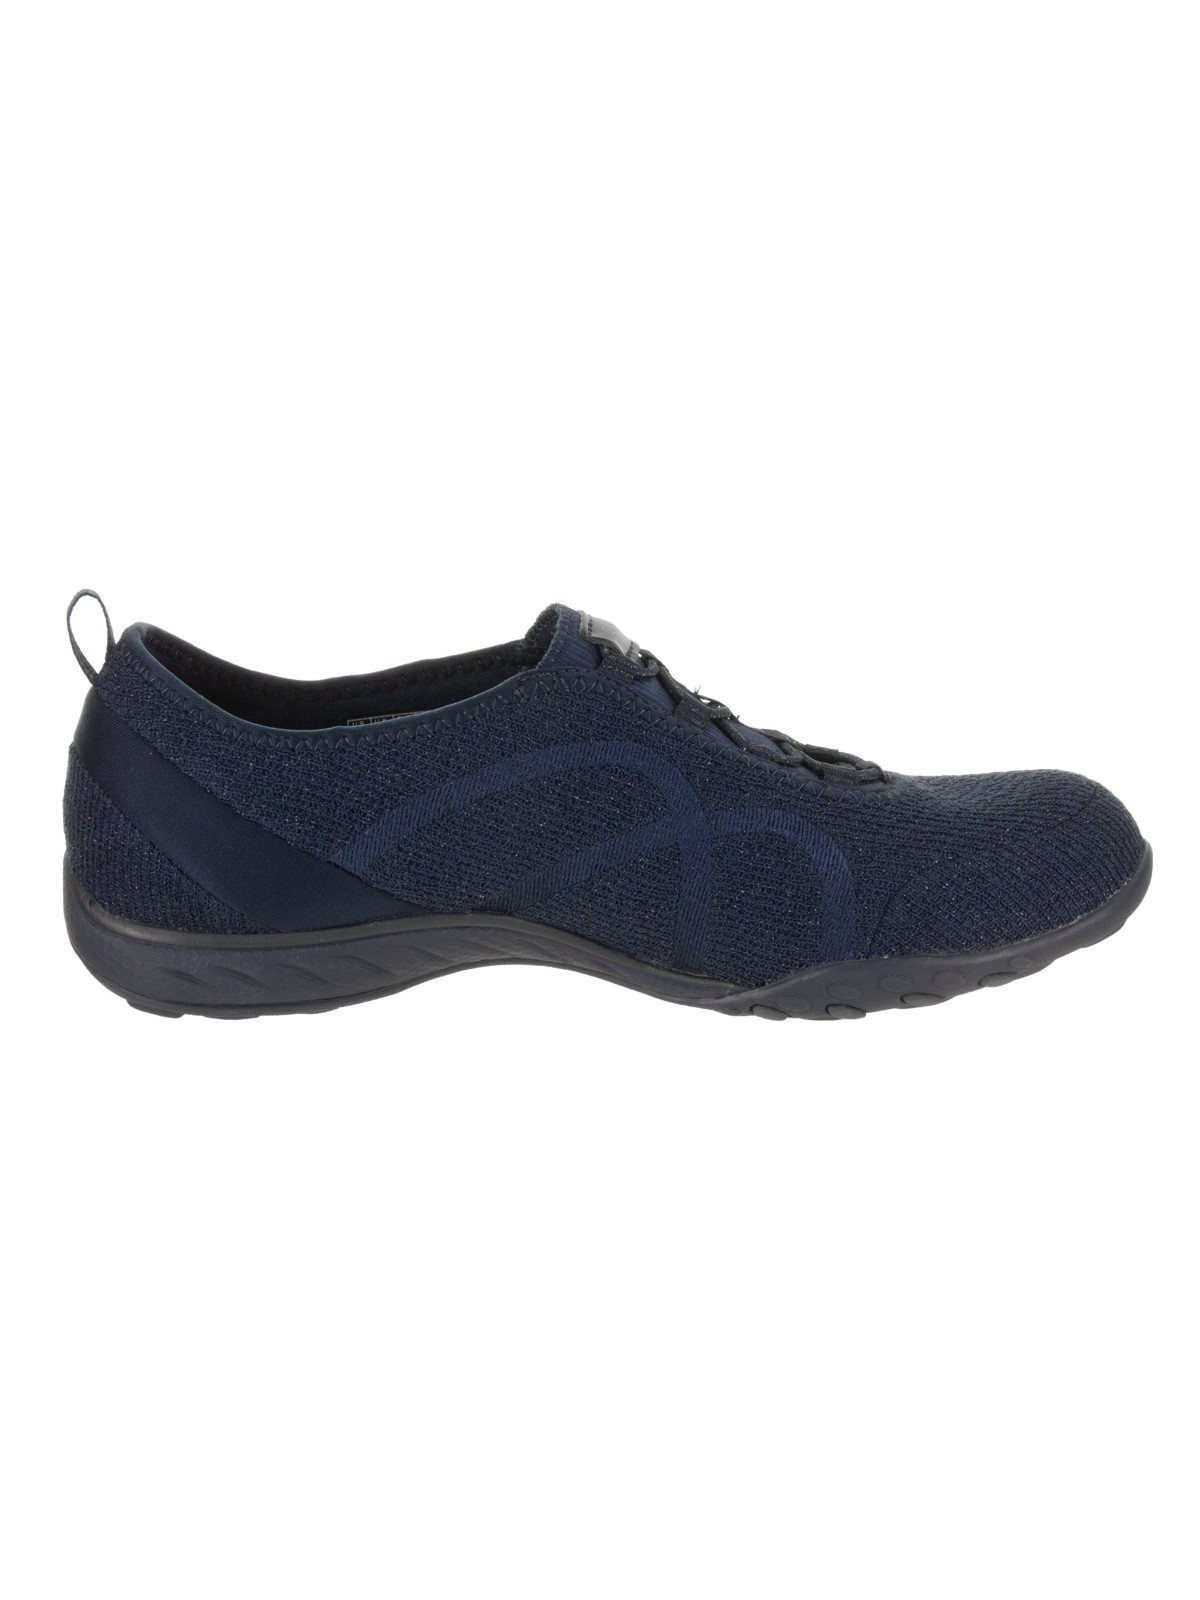 Women's Slip On Easy Search Breathe Star Skechers ShoeWalmart sxthCBrdQo